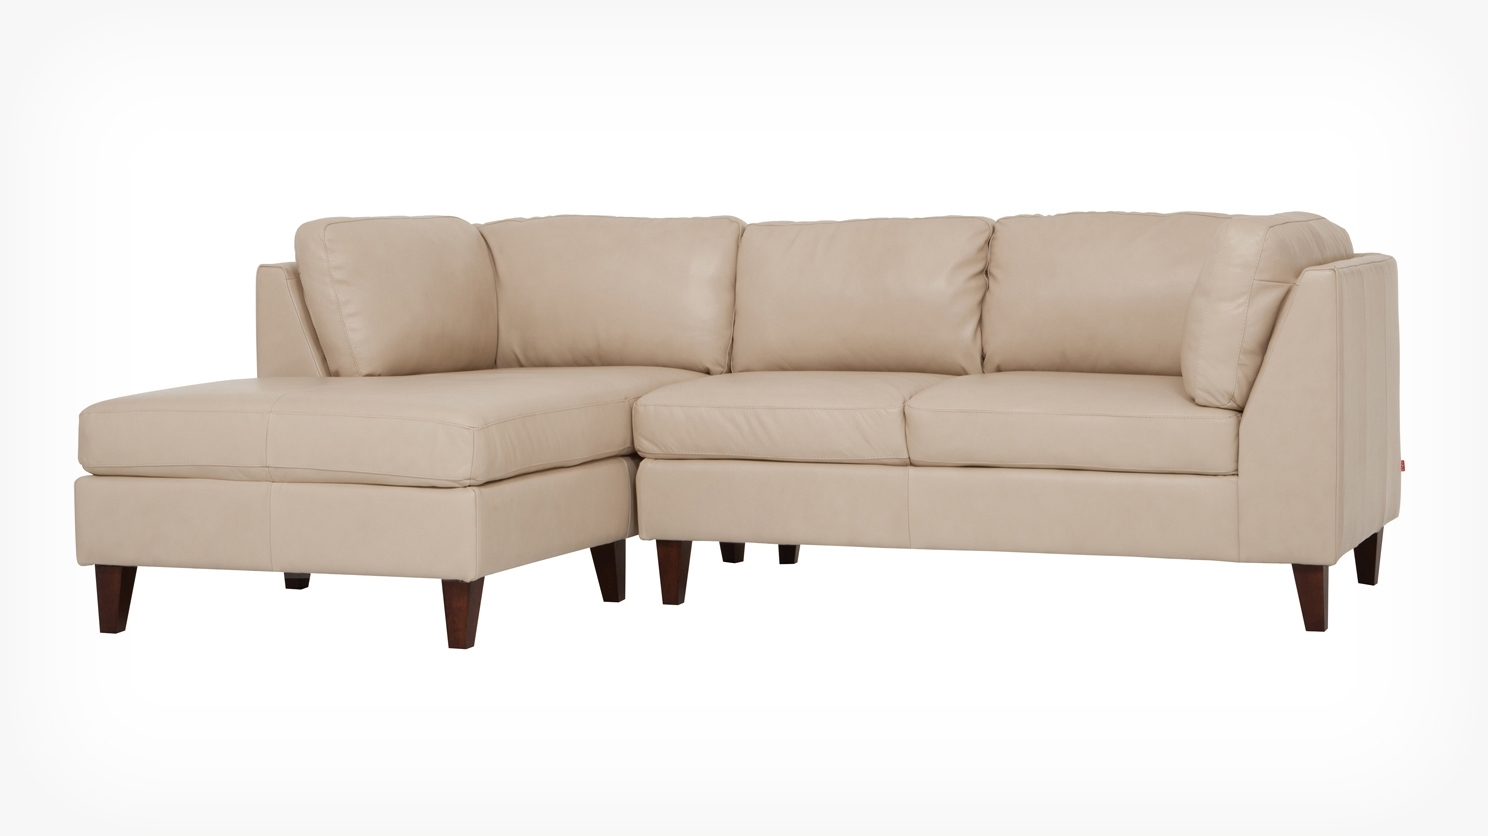 Eq3 | Salema 2 Piece Sectional Sofa With Chaise – Leather In Eq3 Sectional Sofas (View 10 of 10)